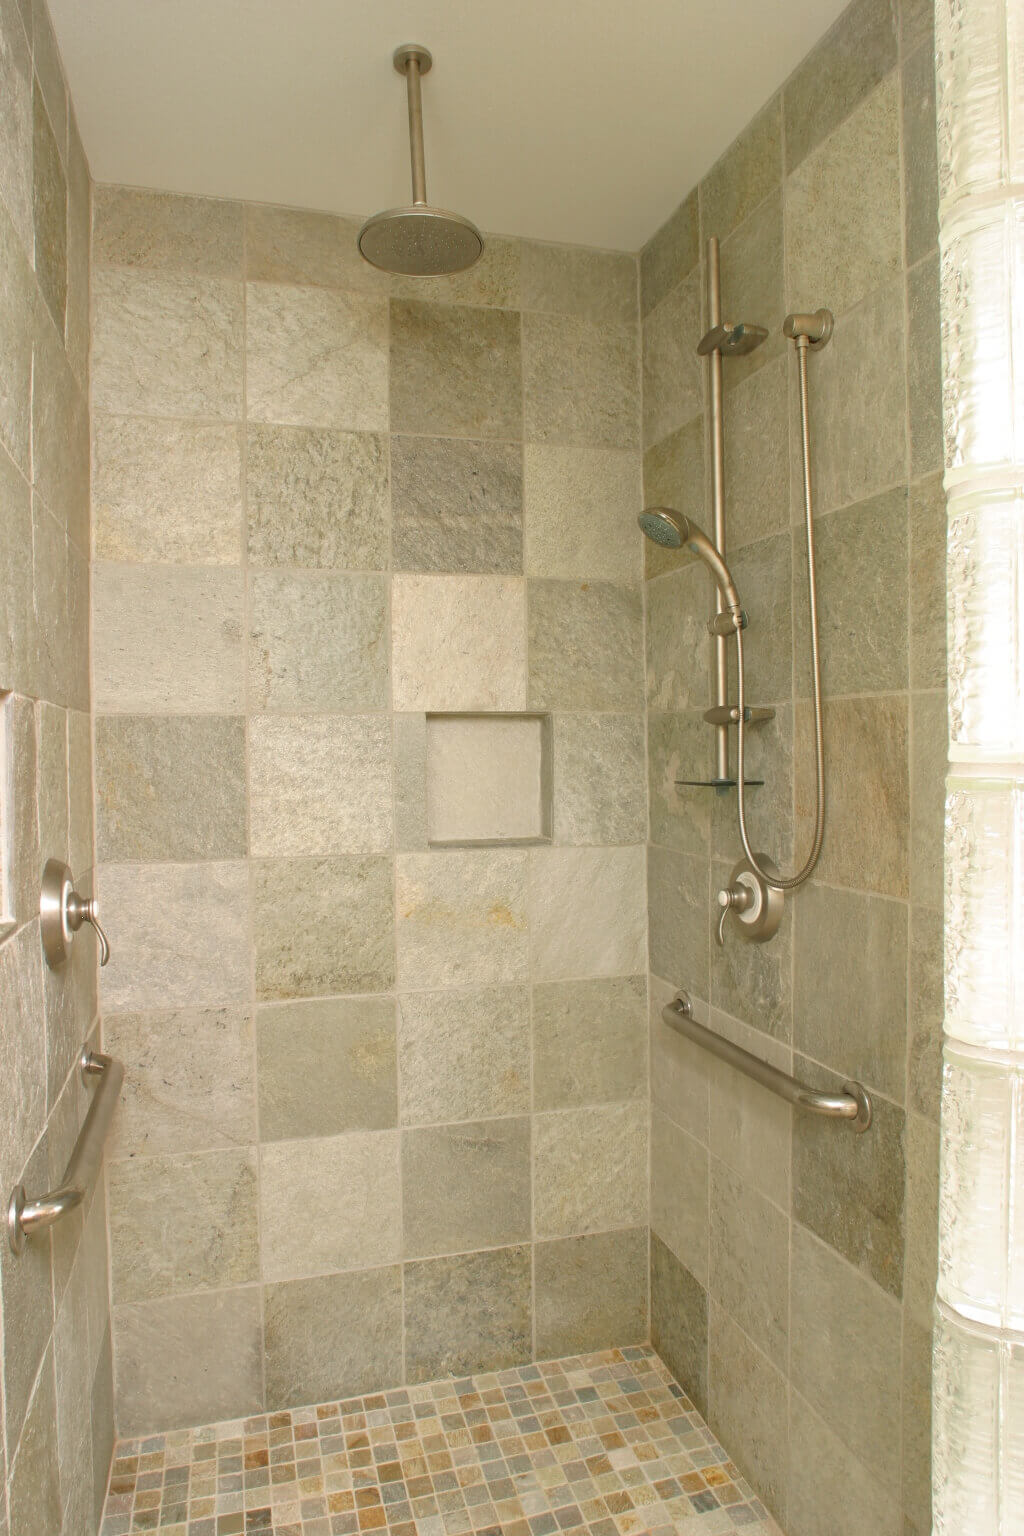 The fully tiled walk-in shower has both an adjustable and rain showerhead.